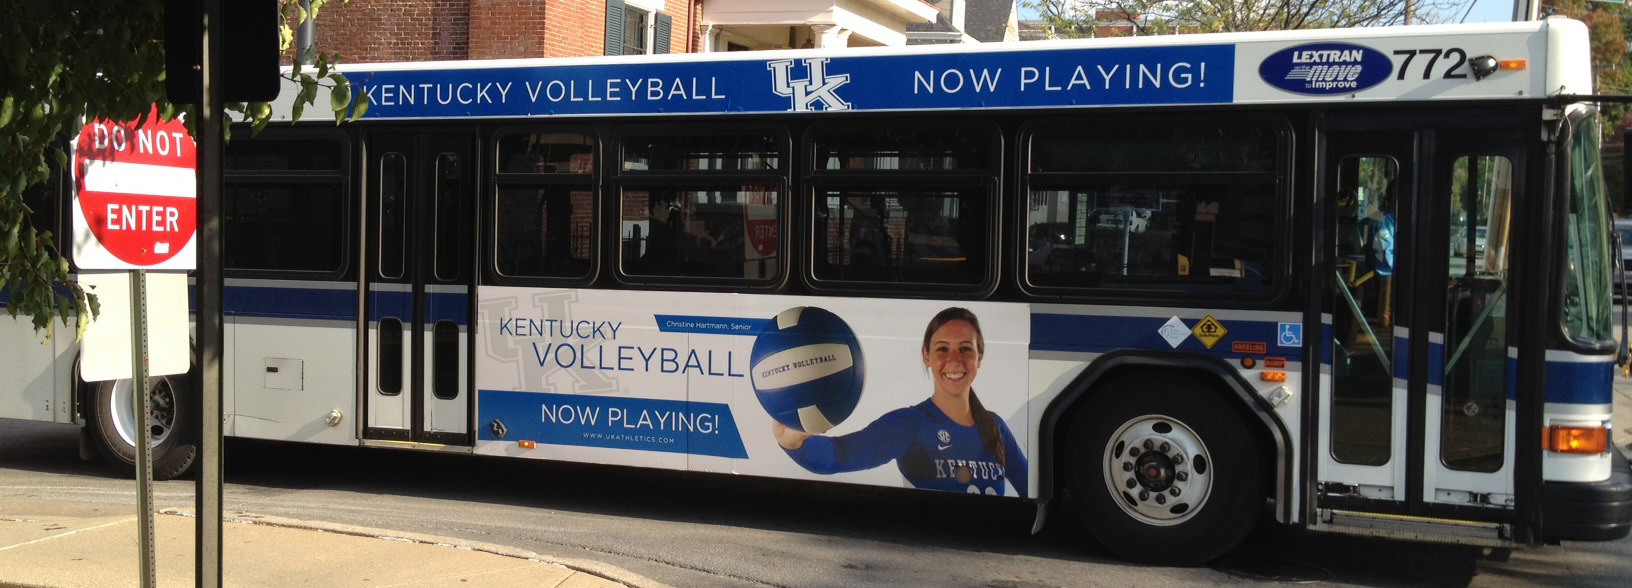 UK Volleyball Minikong Ad